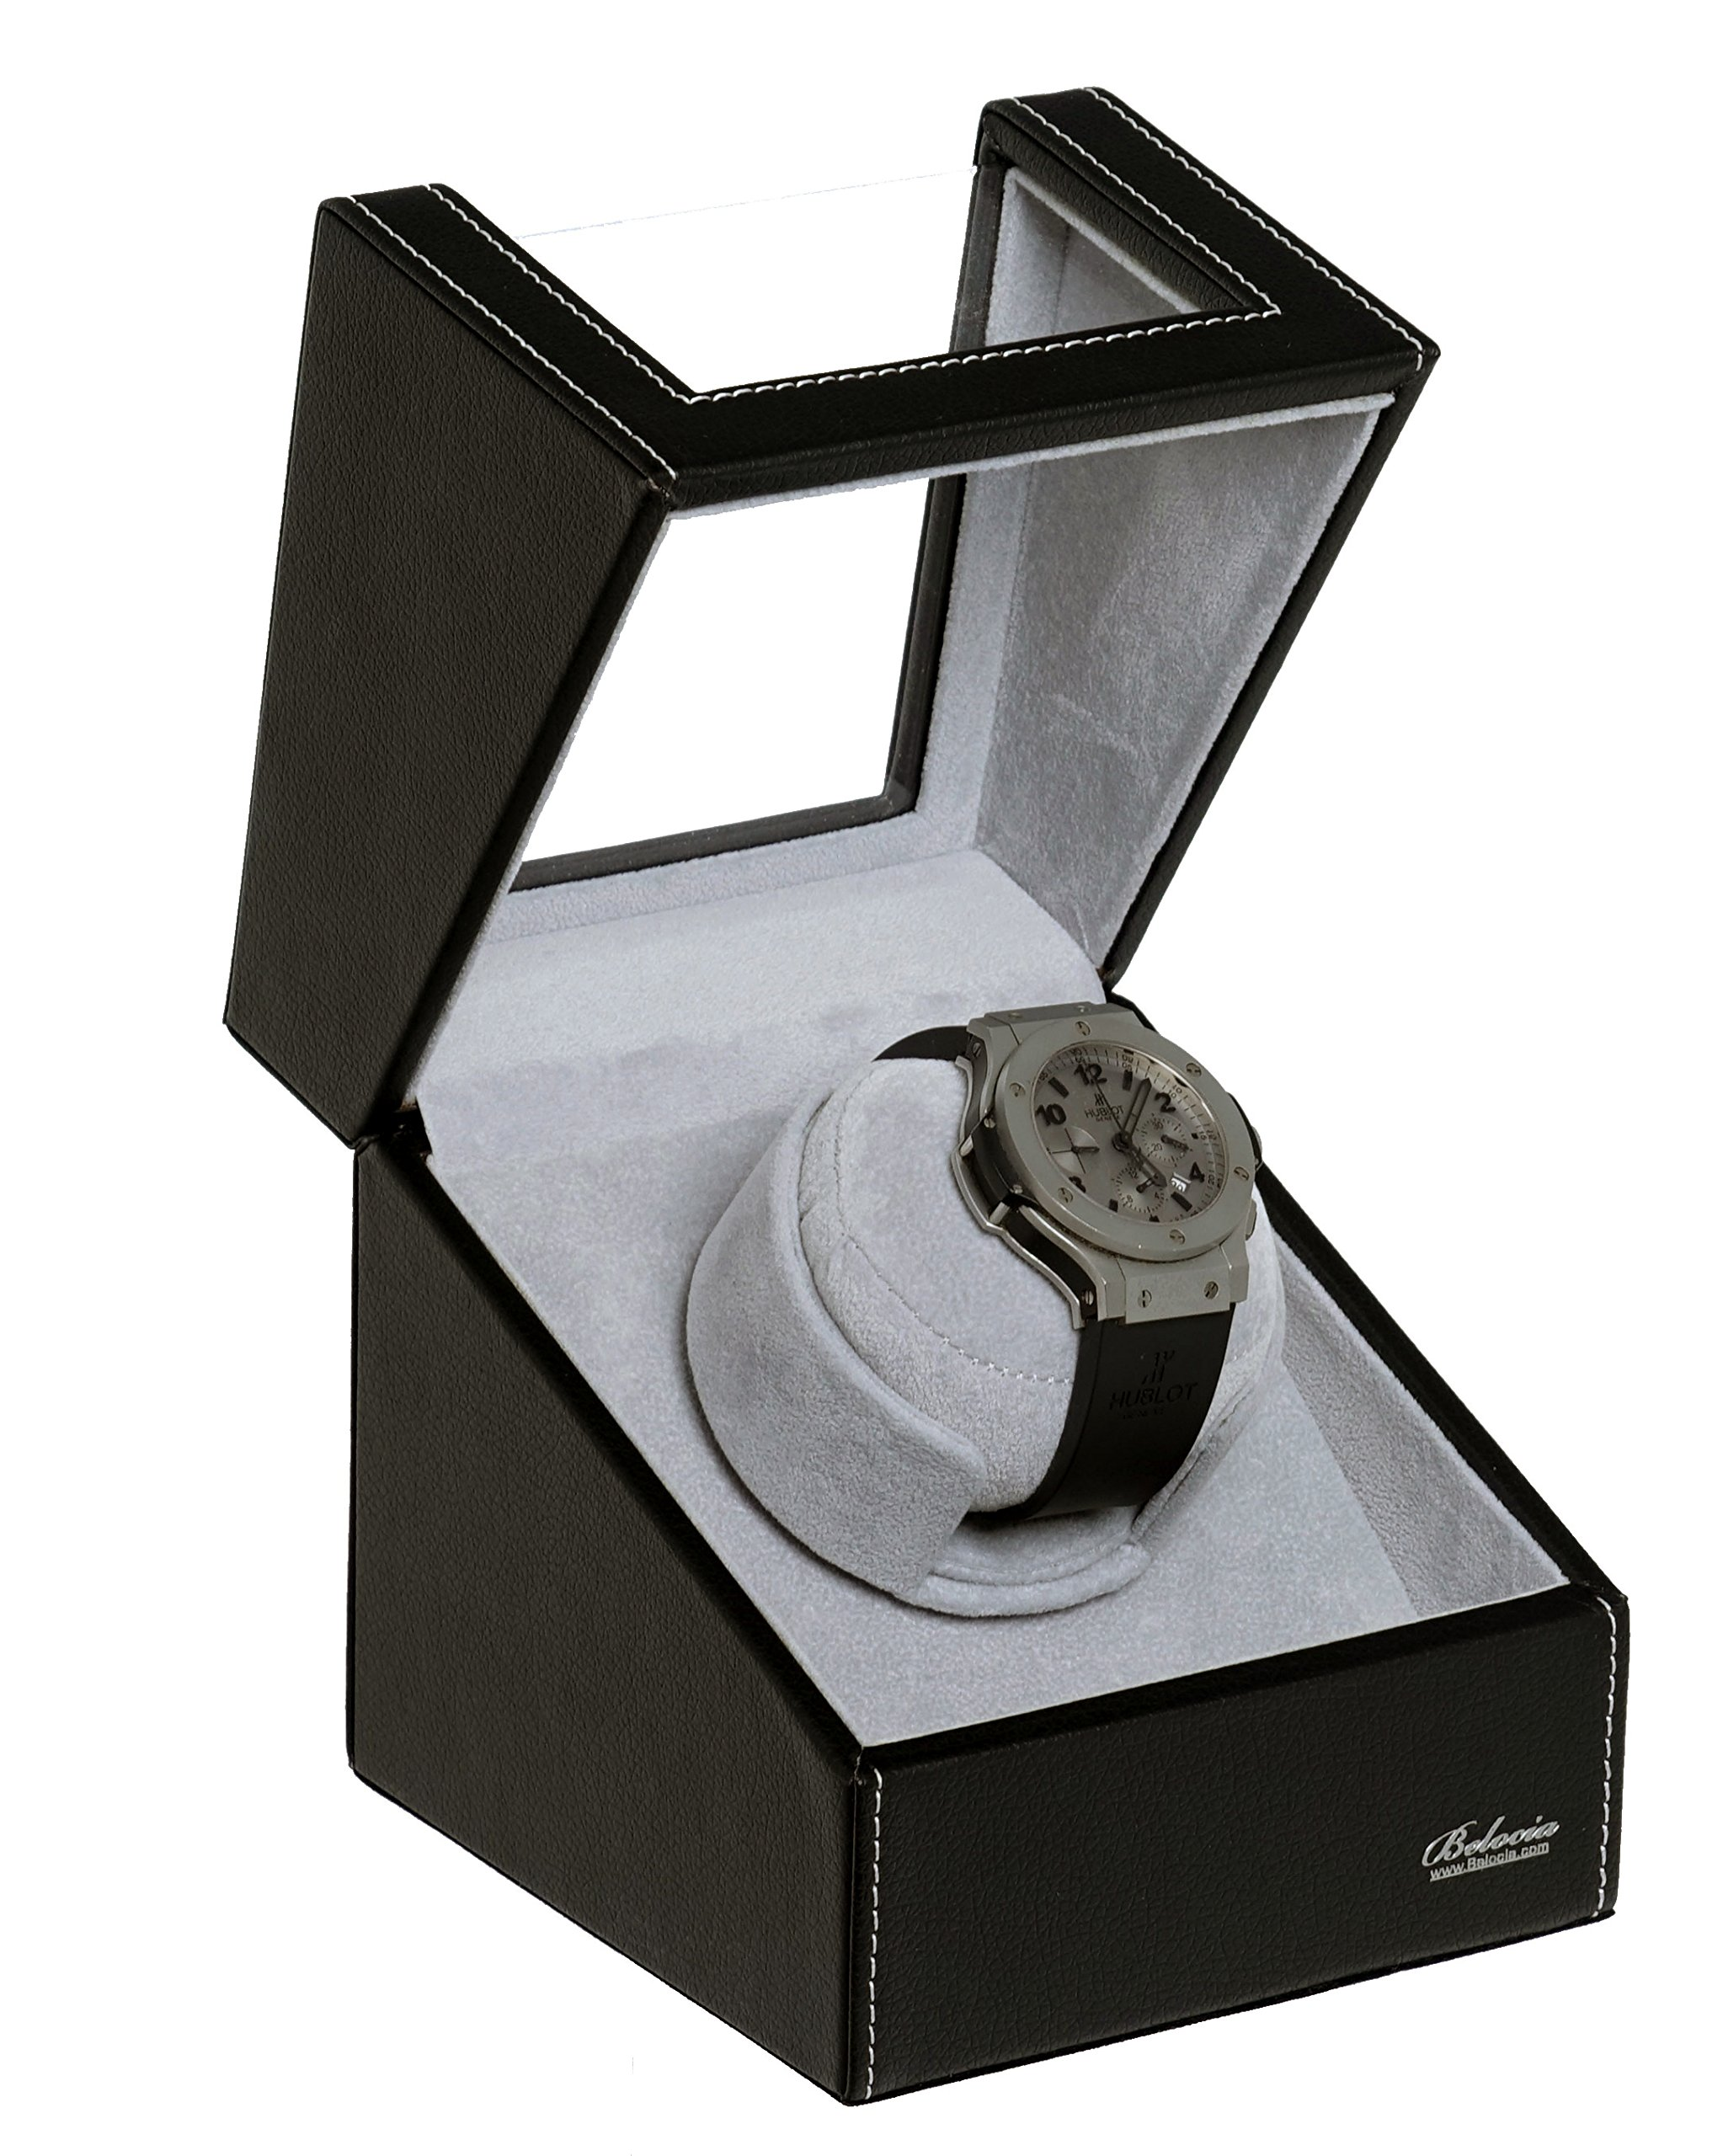 Watch Winder With Japanese Mabuchi Motor, 750, 1000, 1500 and 1800 TPD. (Black/GreyW1)